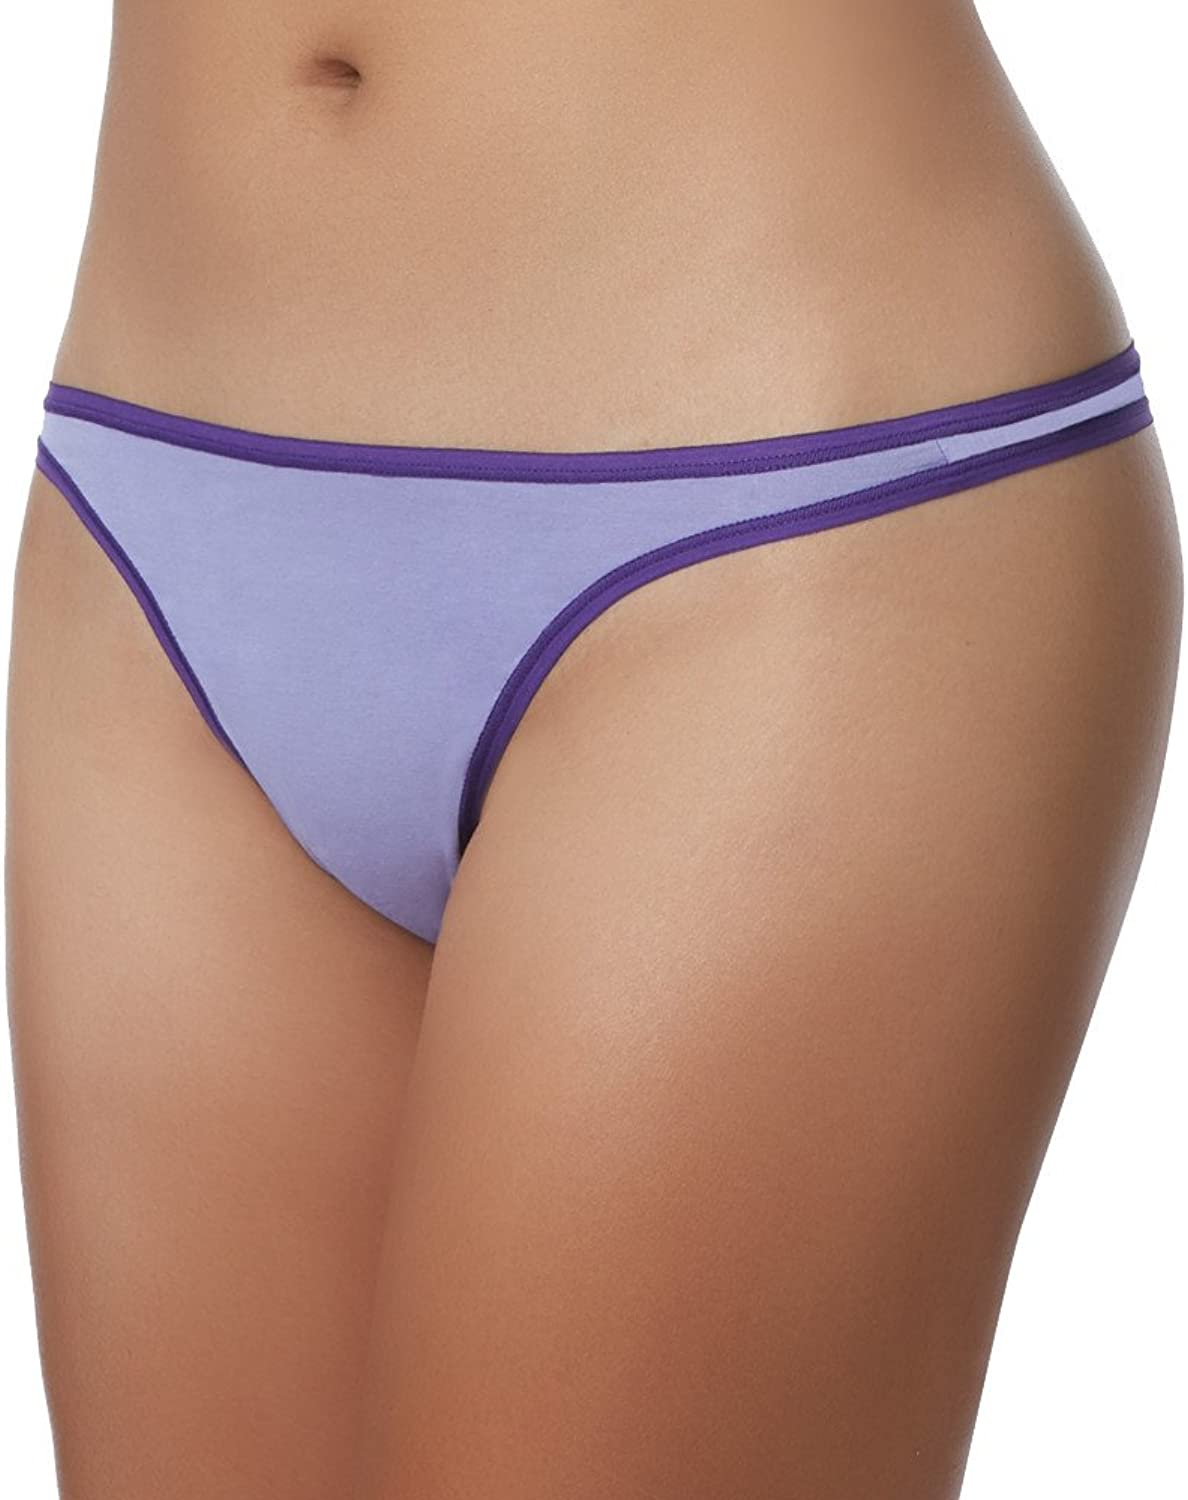 Inventory cleanup selling sale Felina Women's Sublime Thong Max 60% OFF